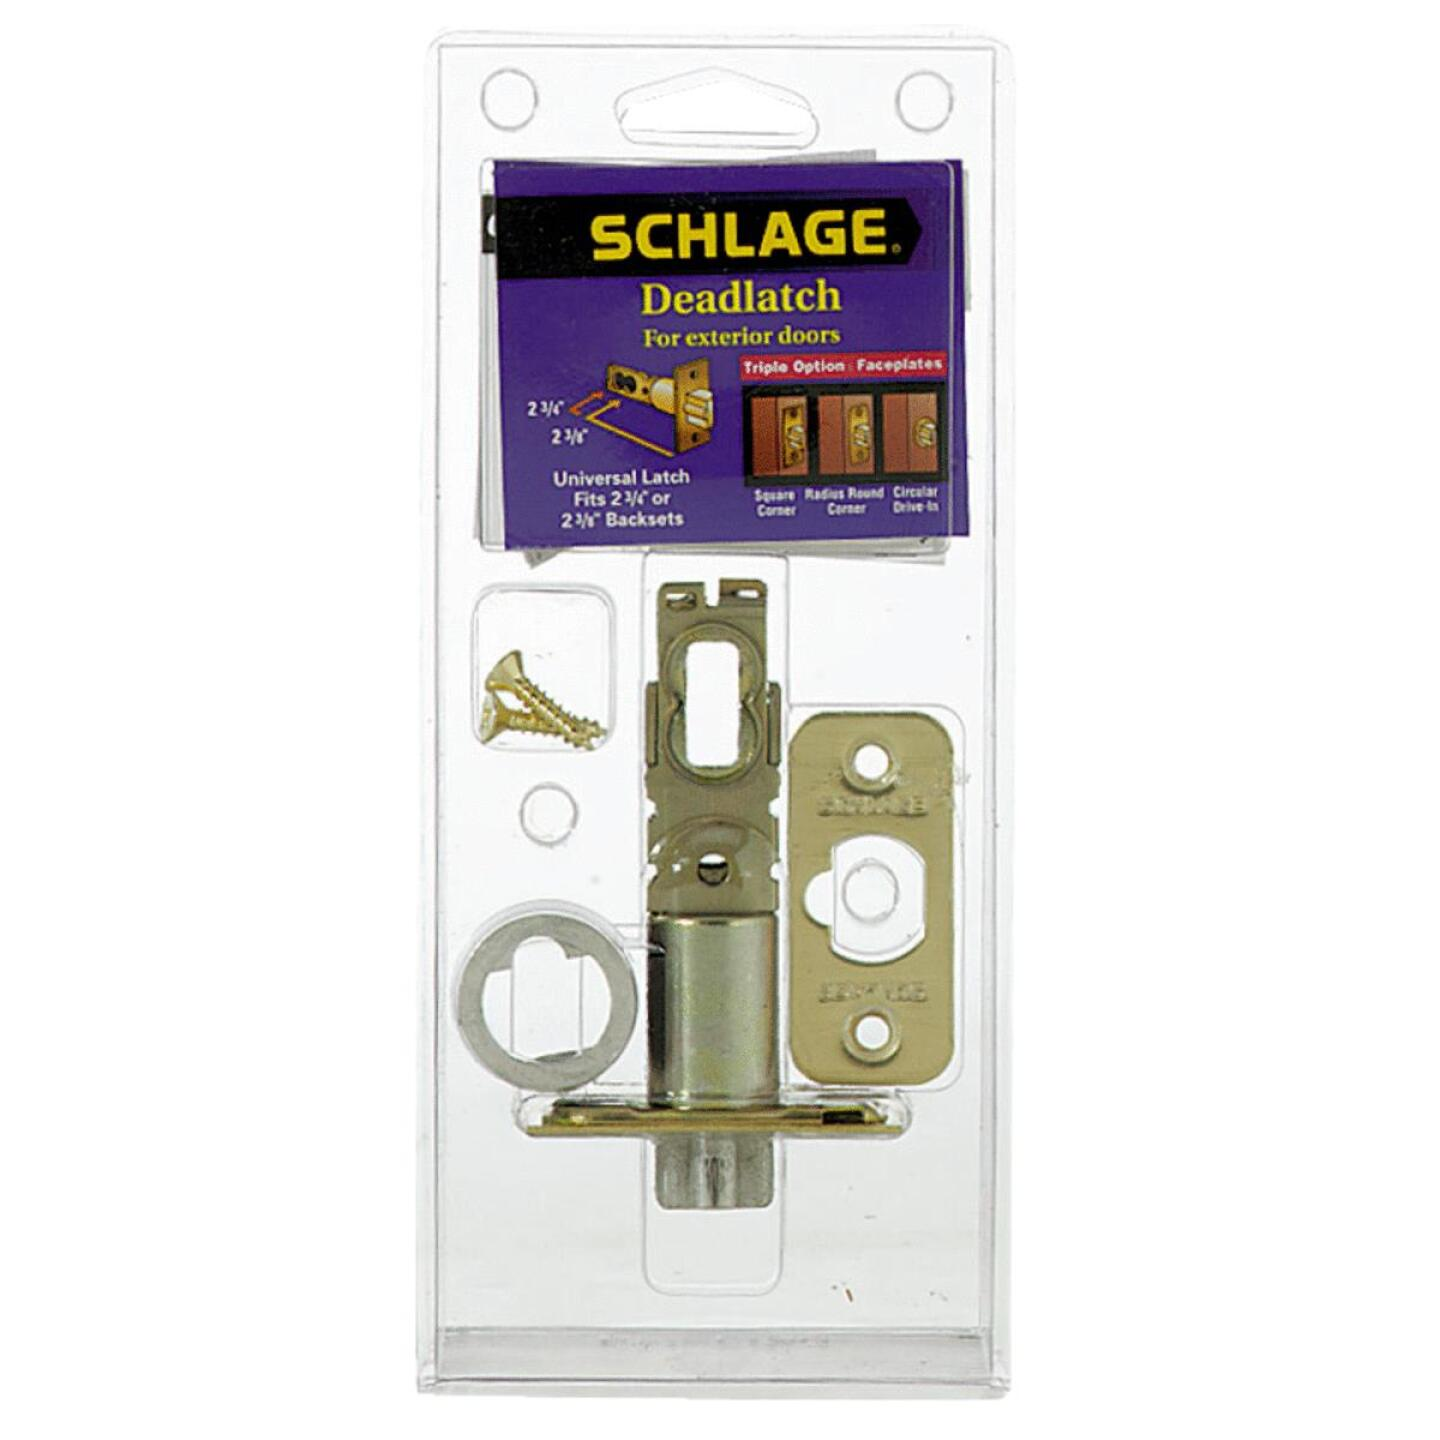 Schlage Triple Option Adjustable Entry Latch Image 1